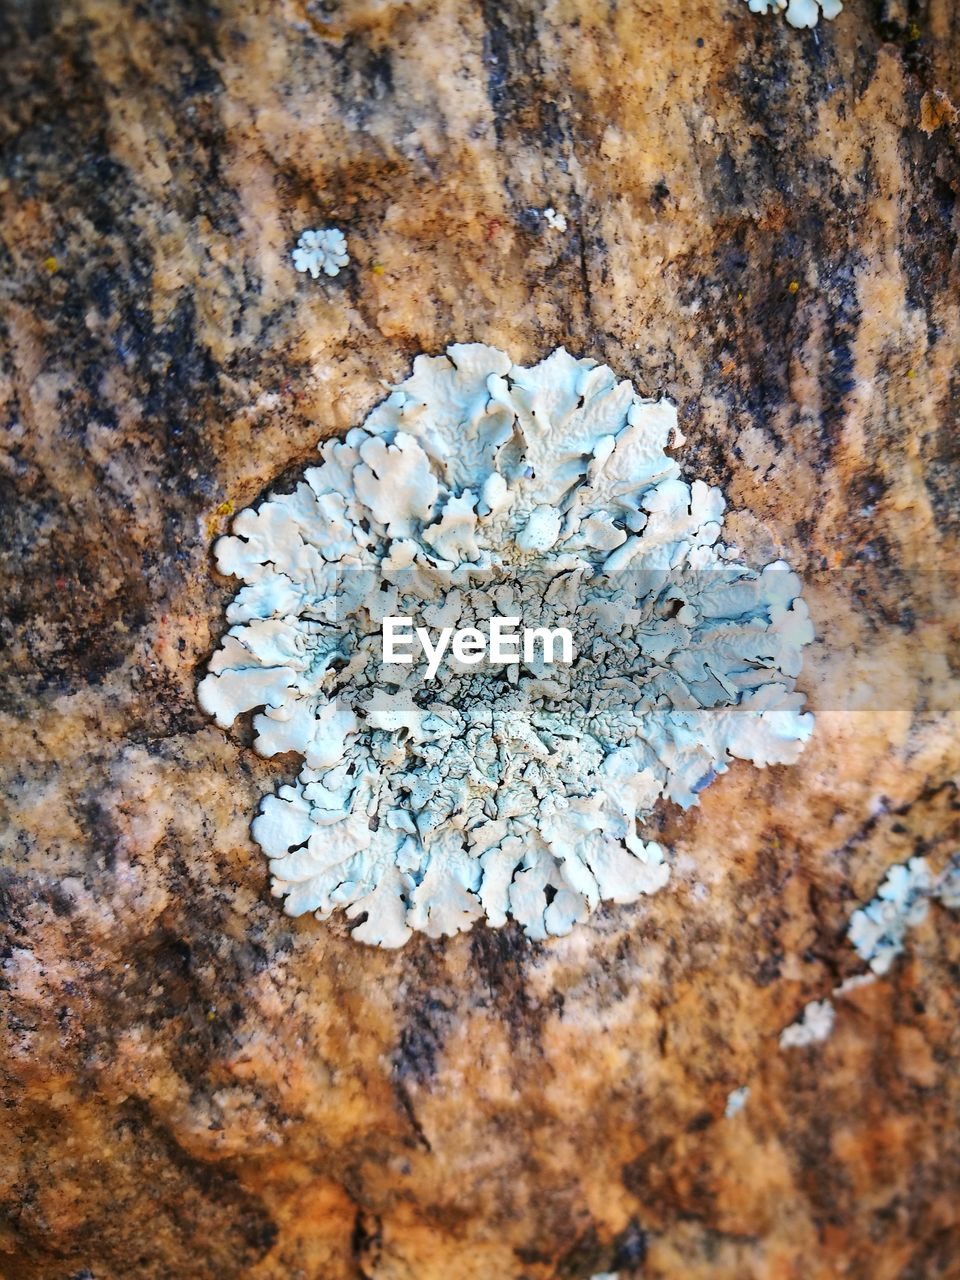 nature, close-up, no people, rock - object, beauty in nature, day, growth, lichen, outdoors, flower head, flower, fragility